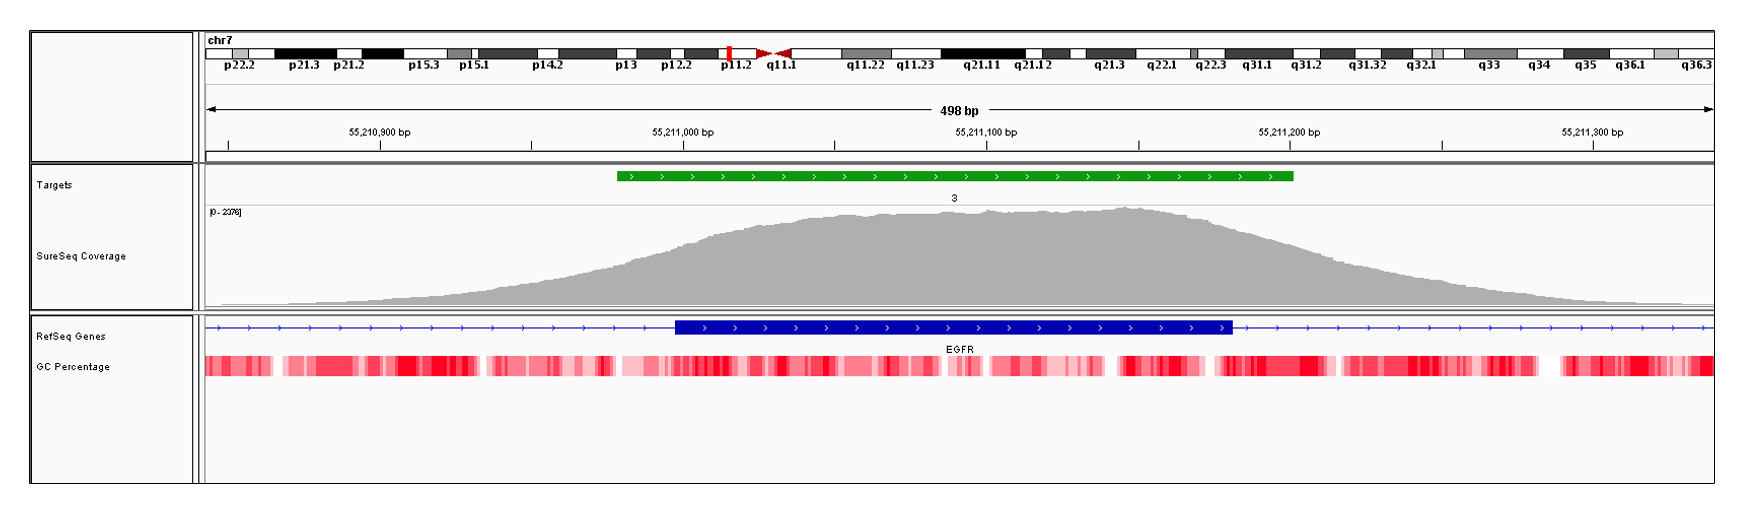 EGFR Exon 3 (hg19 chr7:55210998-55211181). Depth of coverage per base (grey). Targeted region (green). Gene coding region as defined by RefSeq (blue). GC percentage (red). Image